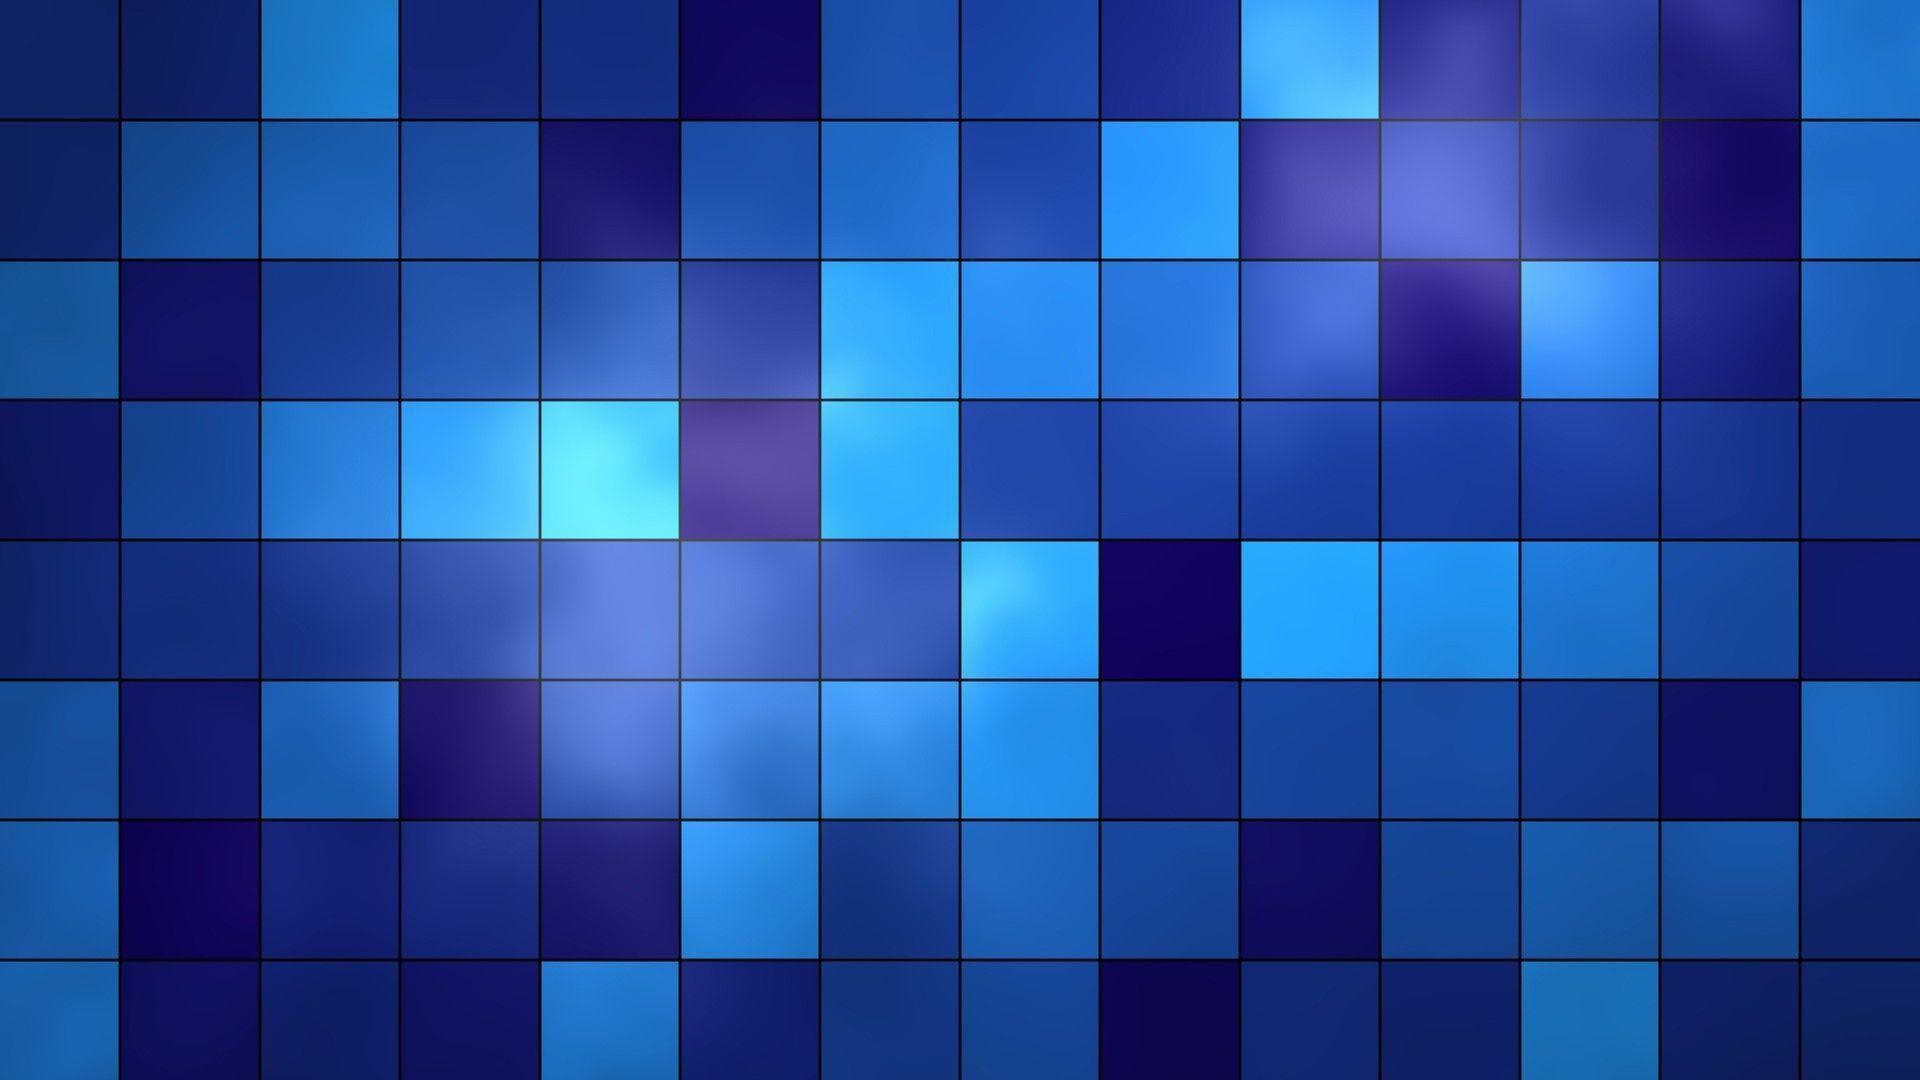 3D Blue Backgrounds Image HD Wallpapers 2014